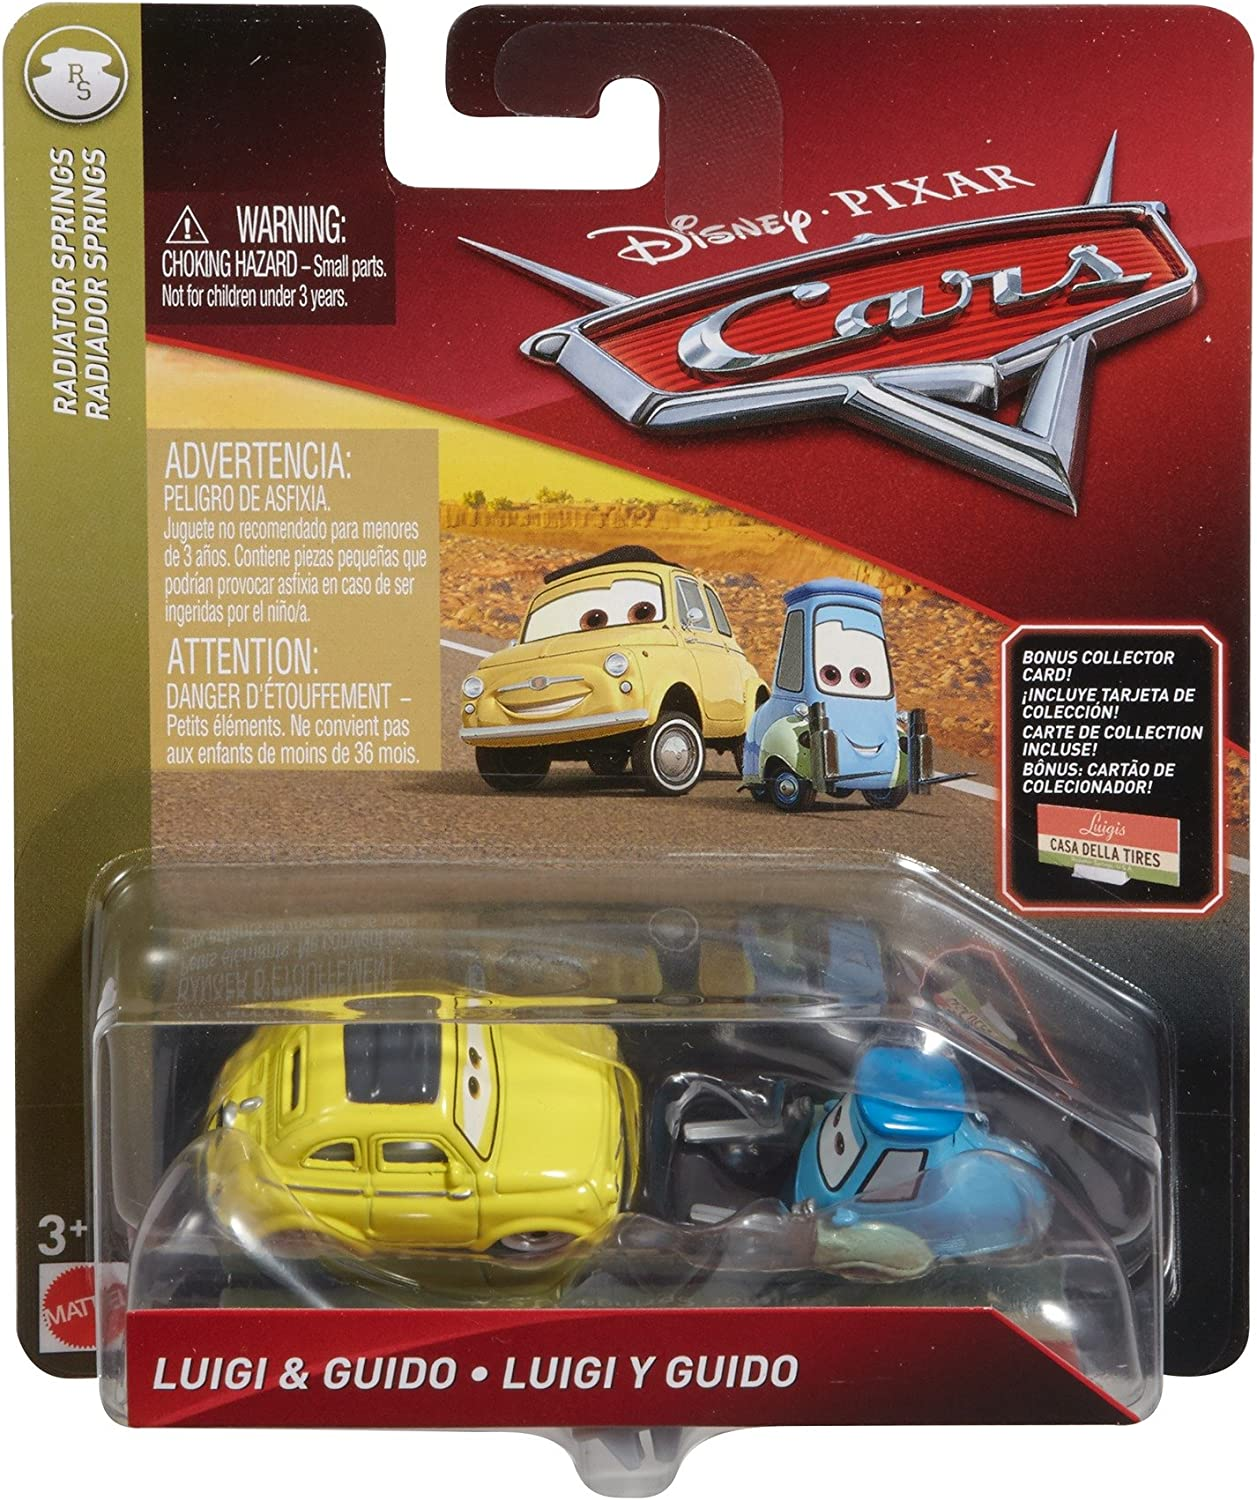 Disney Pixar Cars Die-cast Guido & Luigi with Accessory Card Vehicle